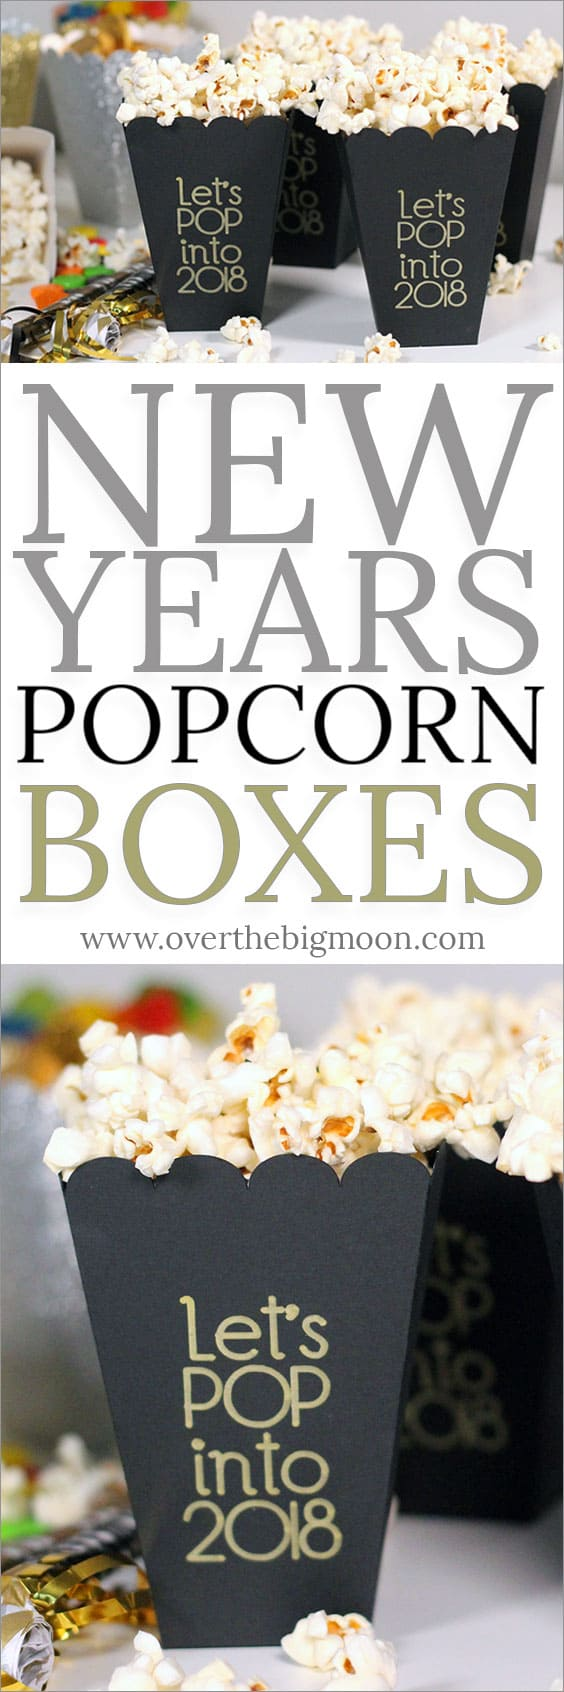 Easy DIY New Years Popcorn and Treat Boxes! From overthebigmoon.com!